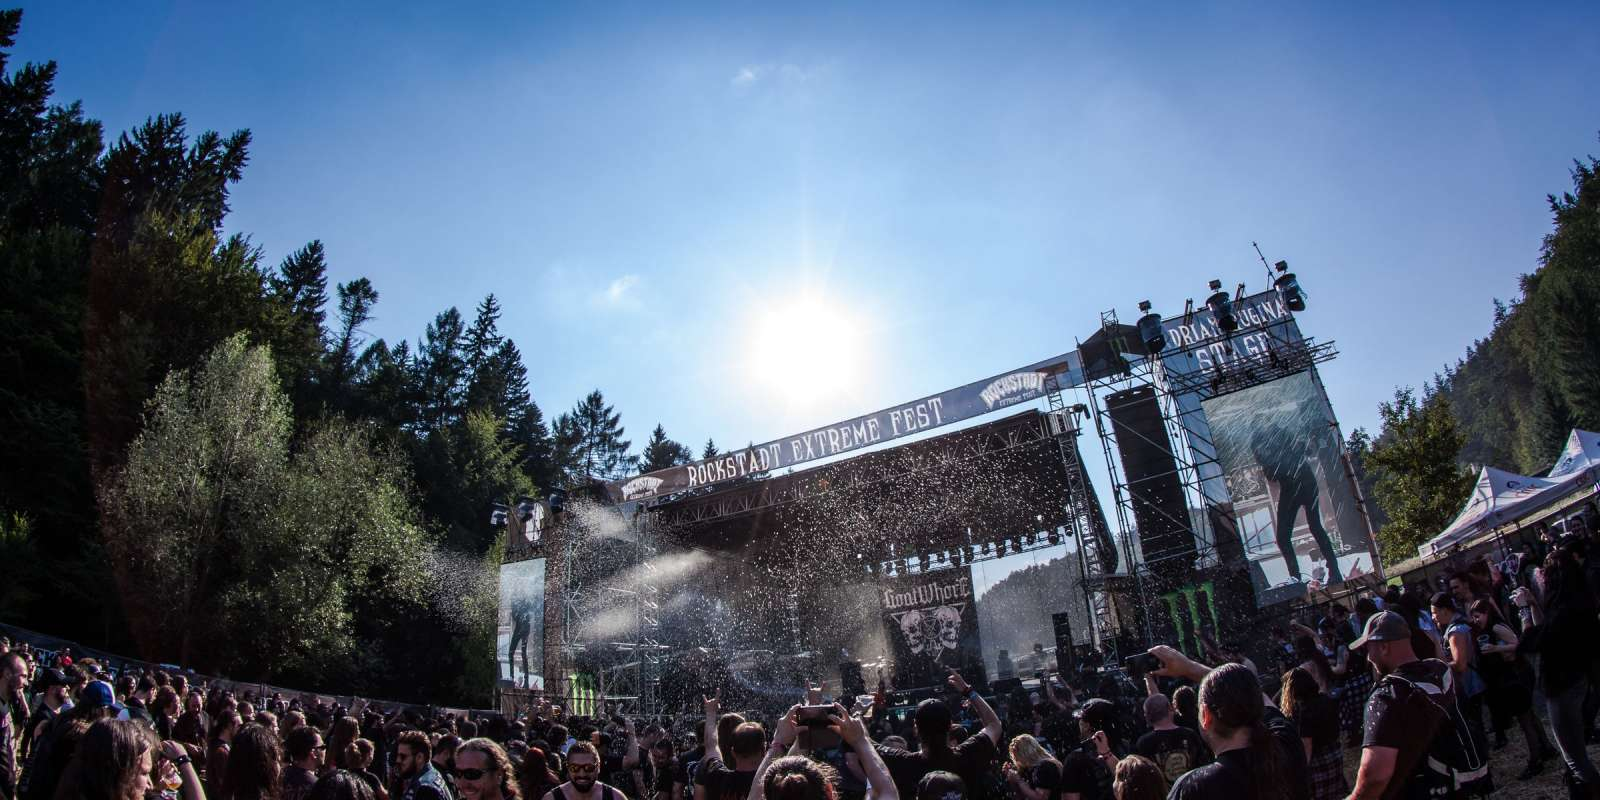 Event imagery from Rockstadt Extreme Fest in Romania.